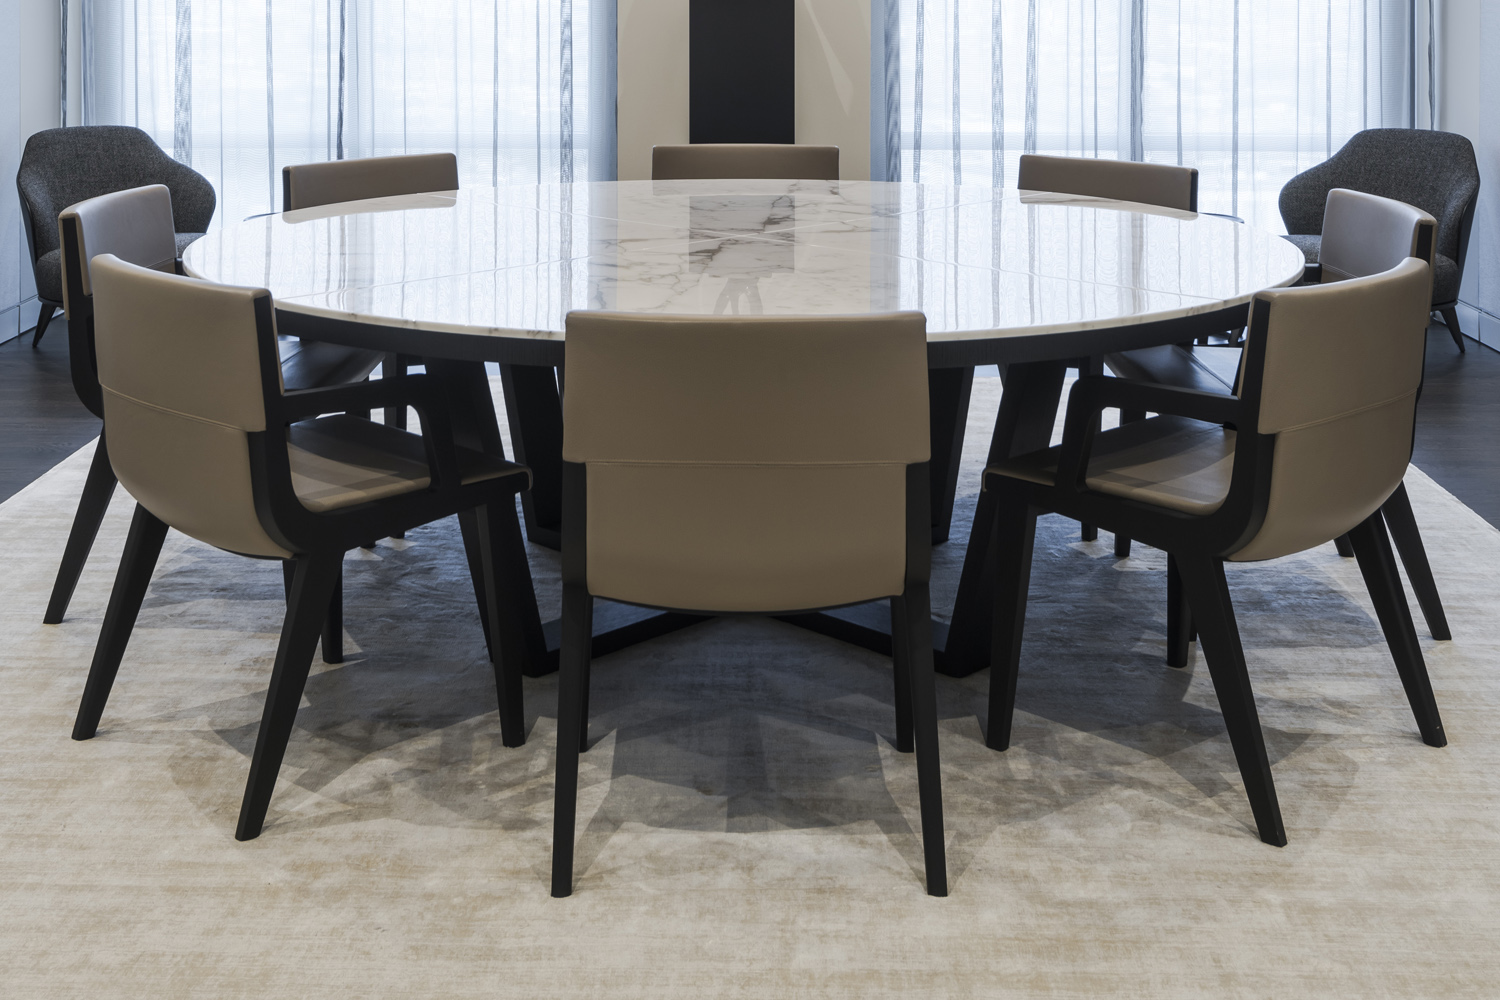 cwg_executive_dining_room_02.jpg